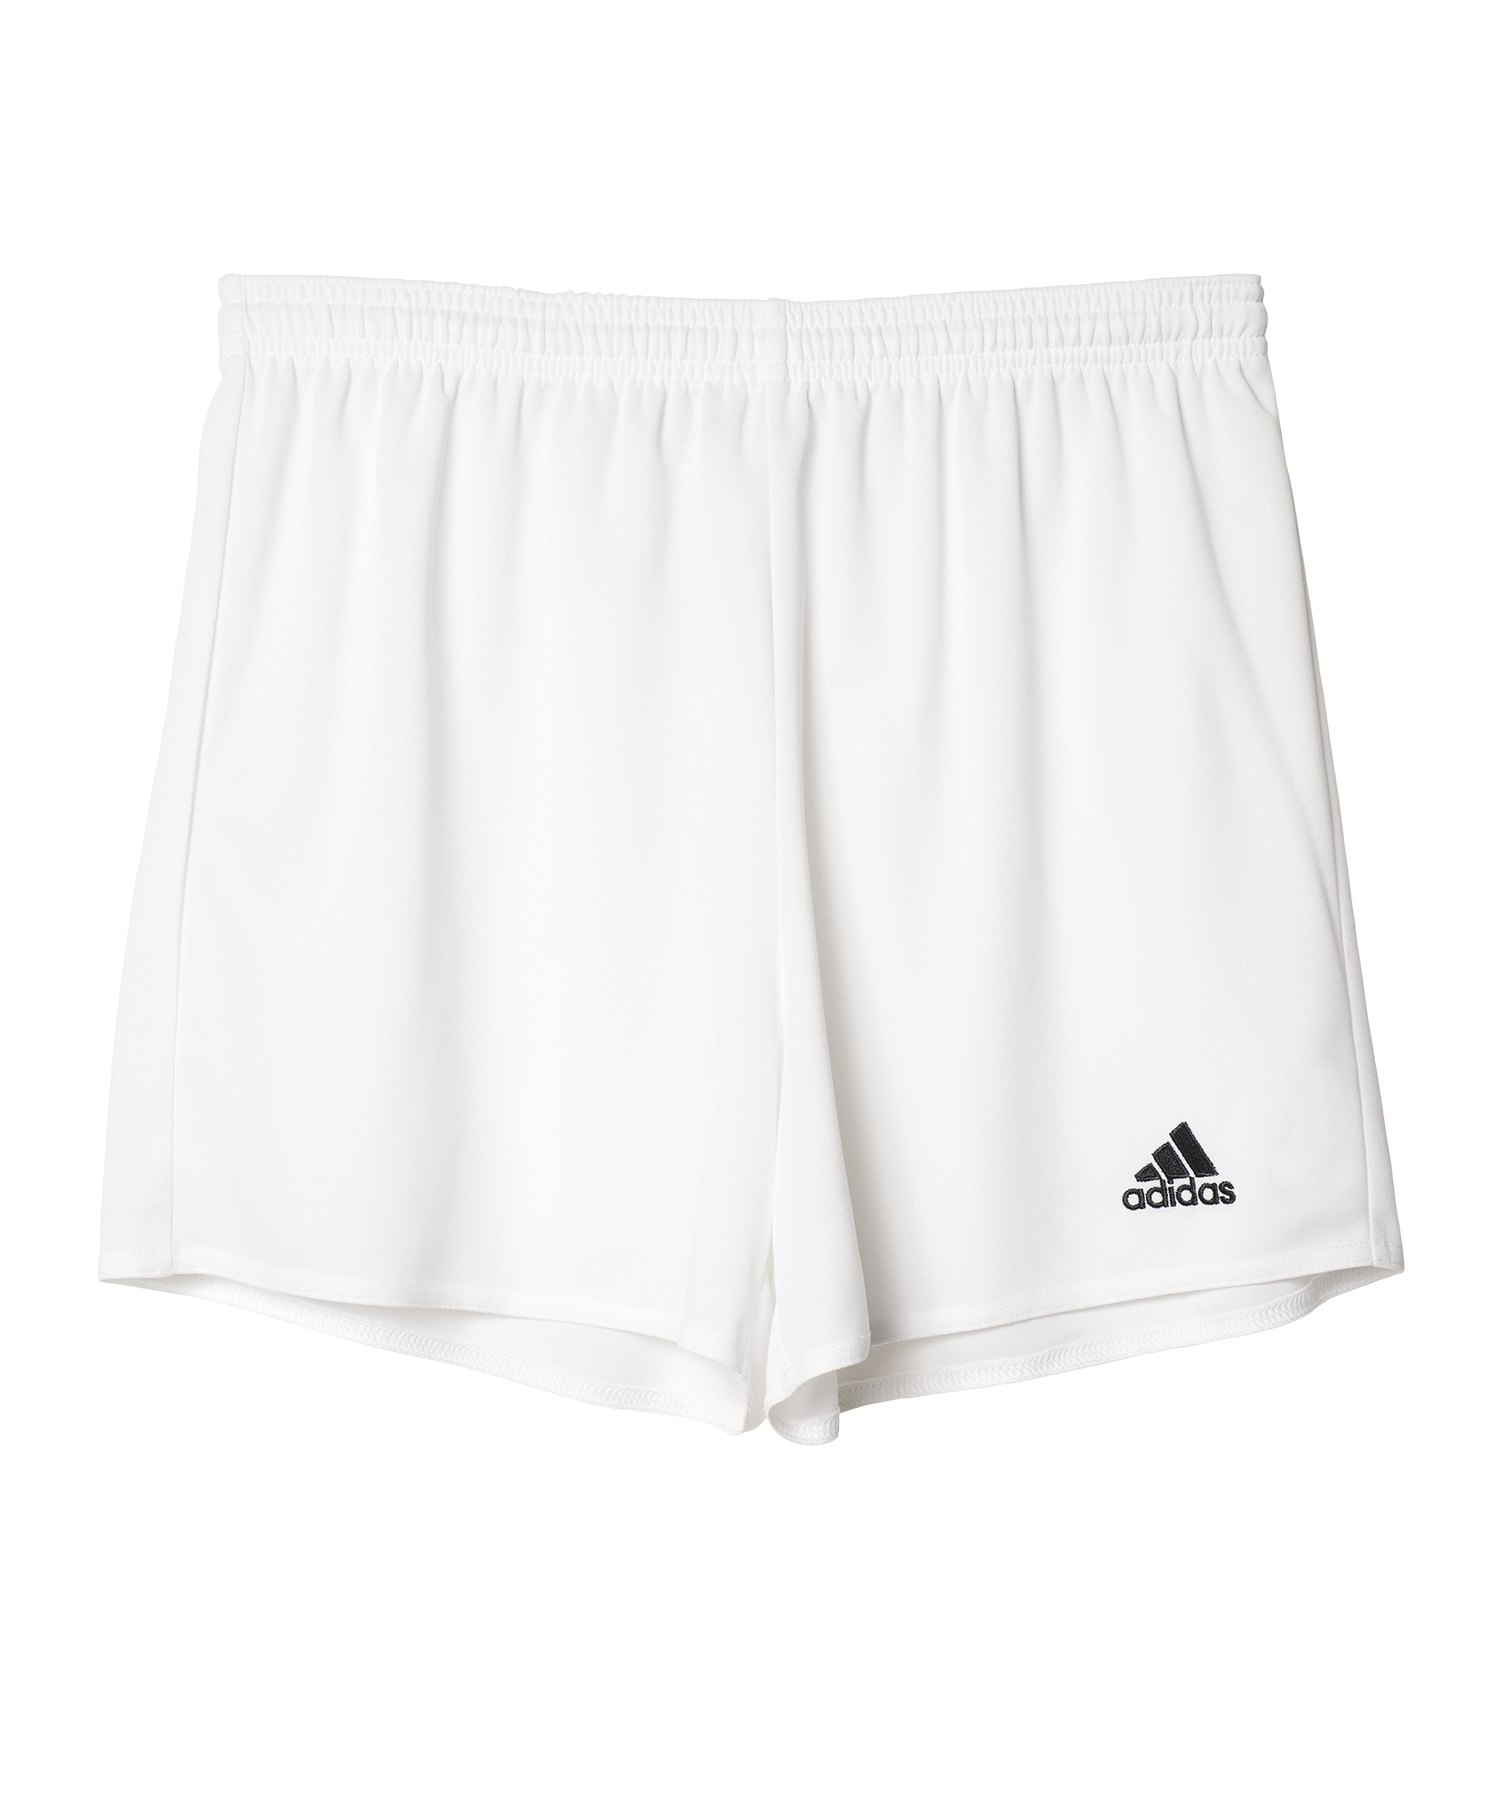 adidas Frauen Trail Sport Shorts MTB Hose dark grey S05574